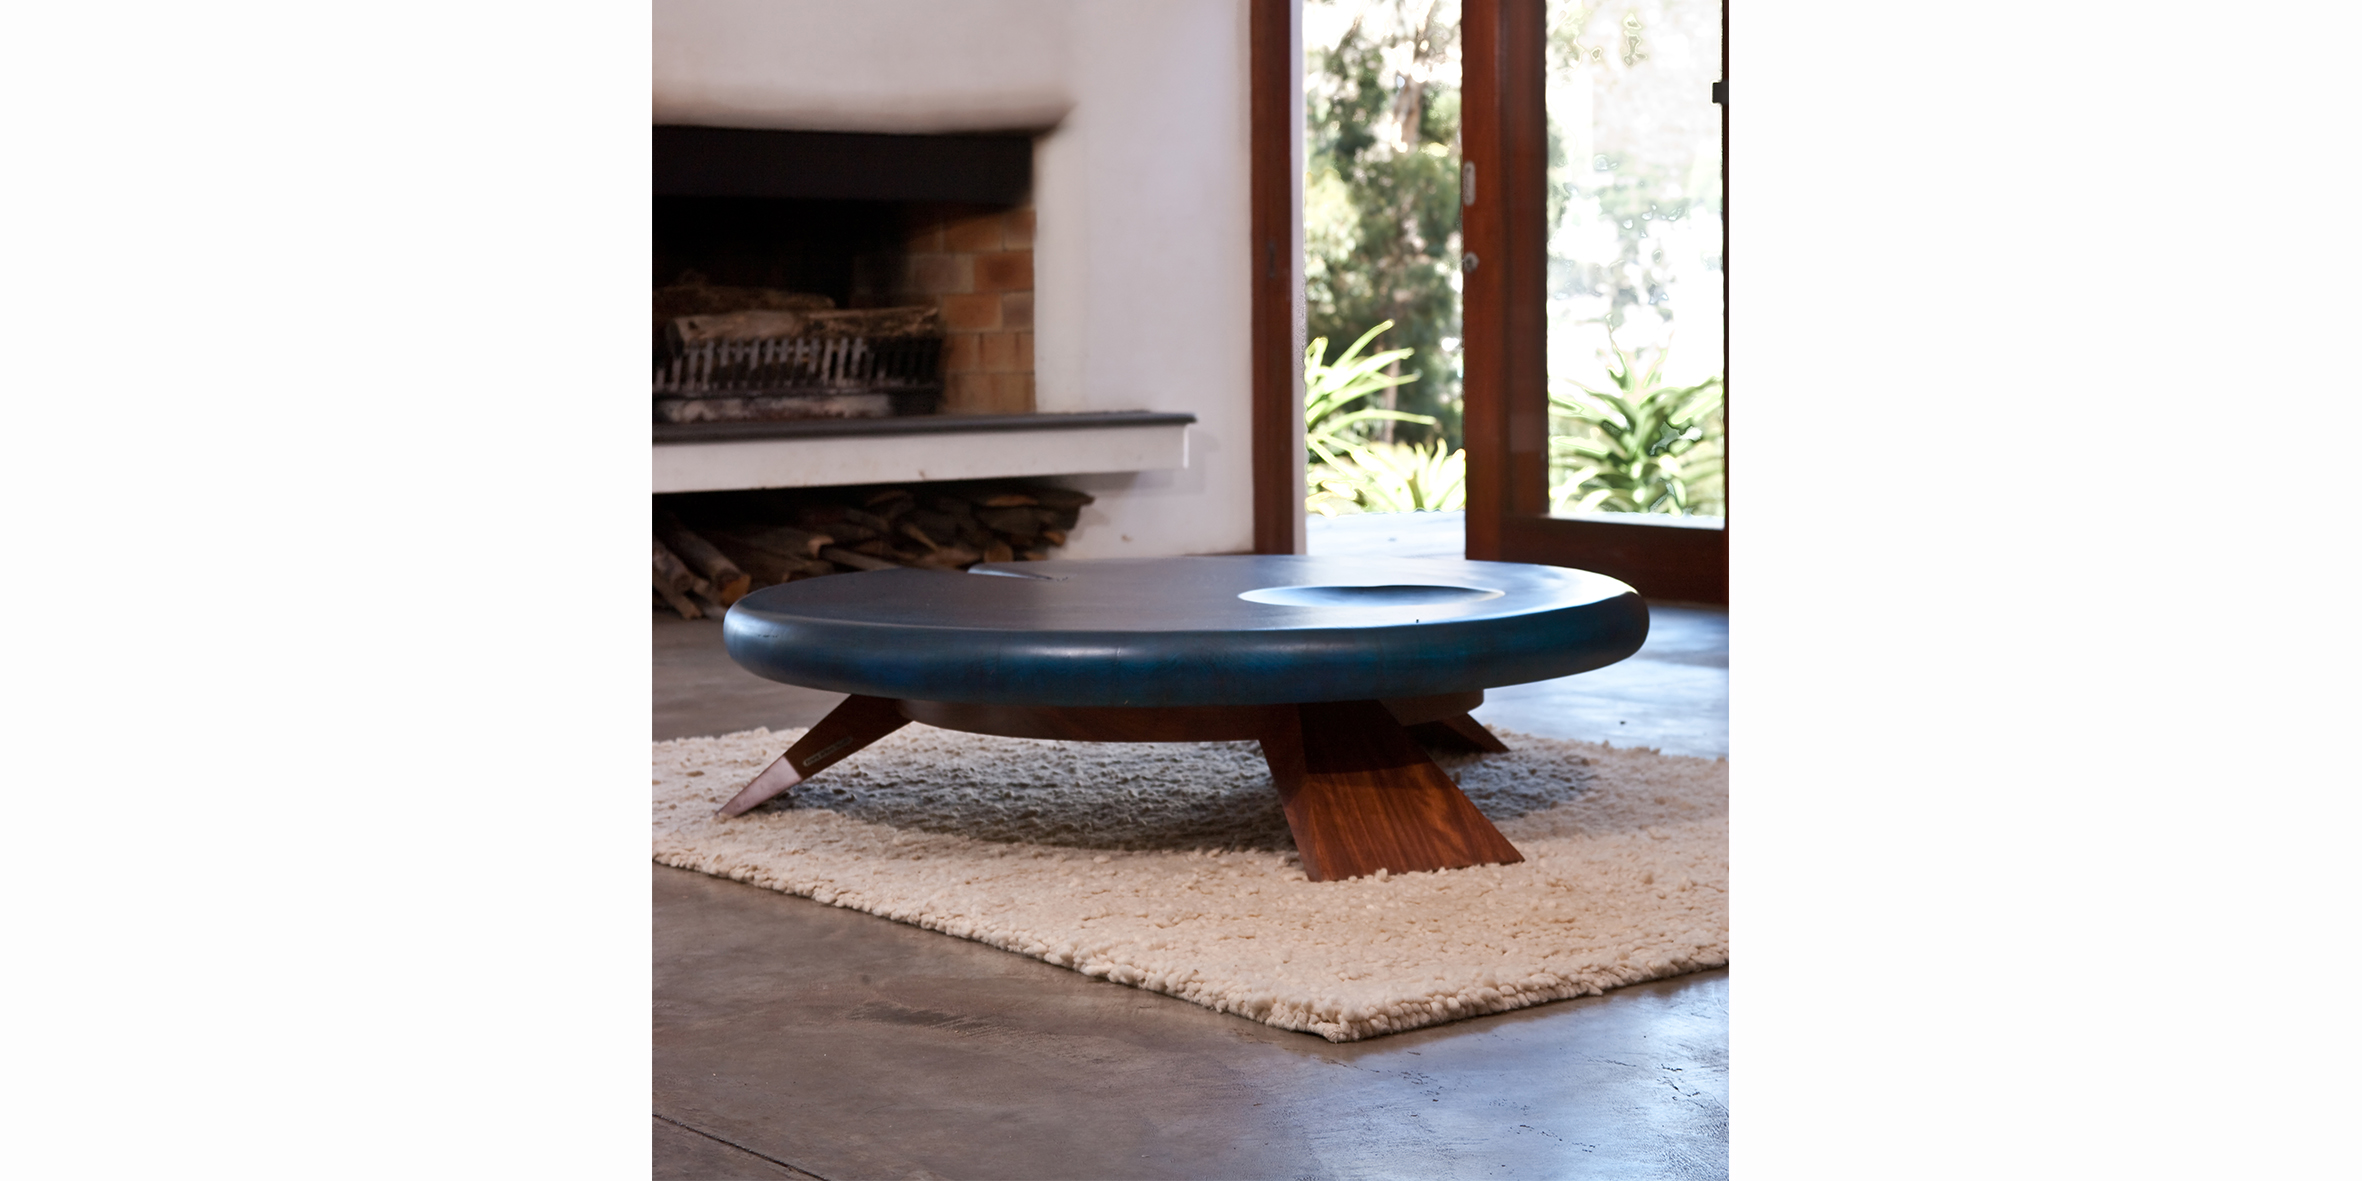 big boy blue, 1400 dia x 350 h, stone pine stained blue with iroko base4